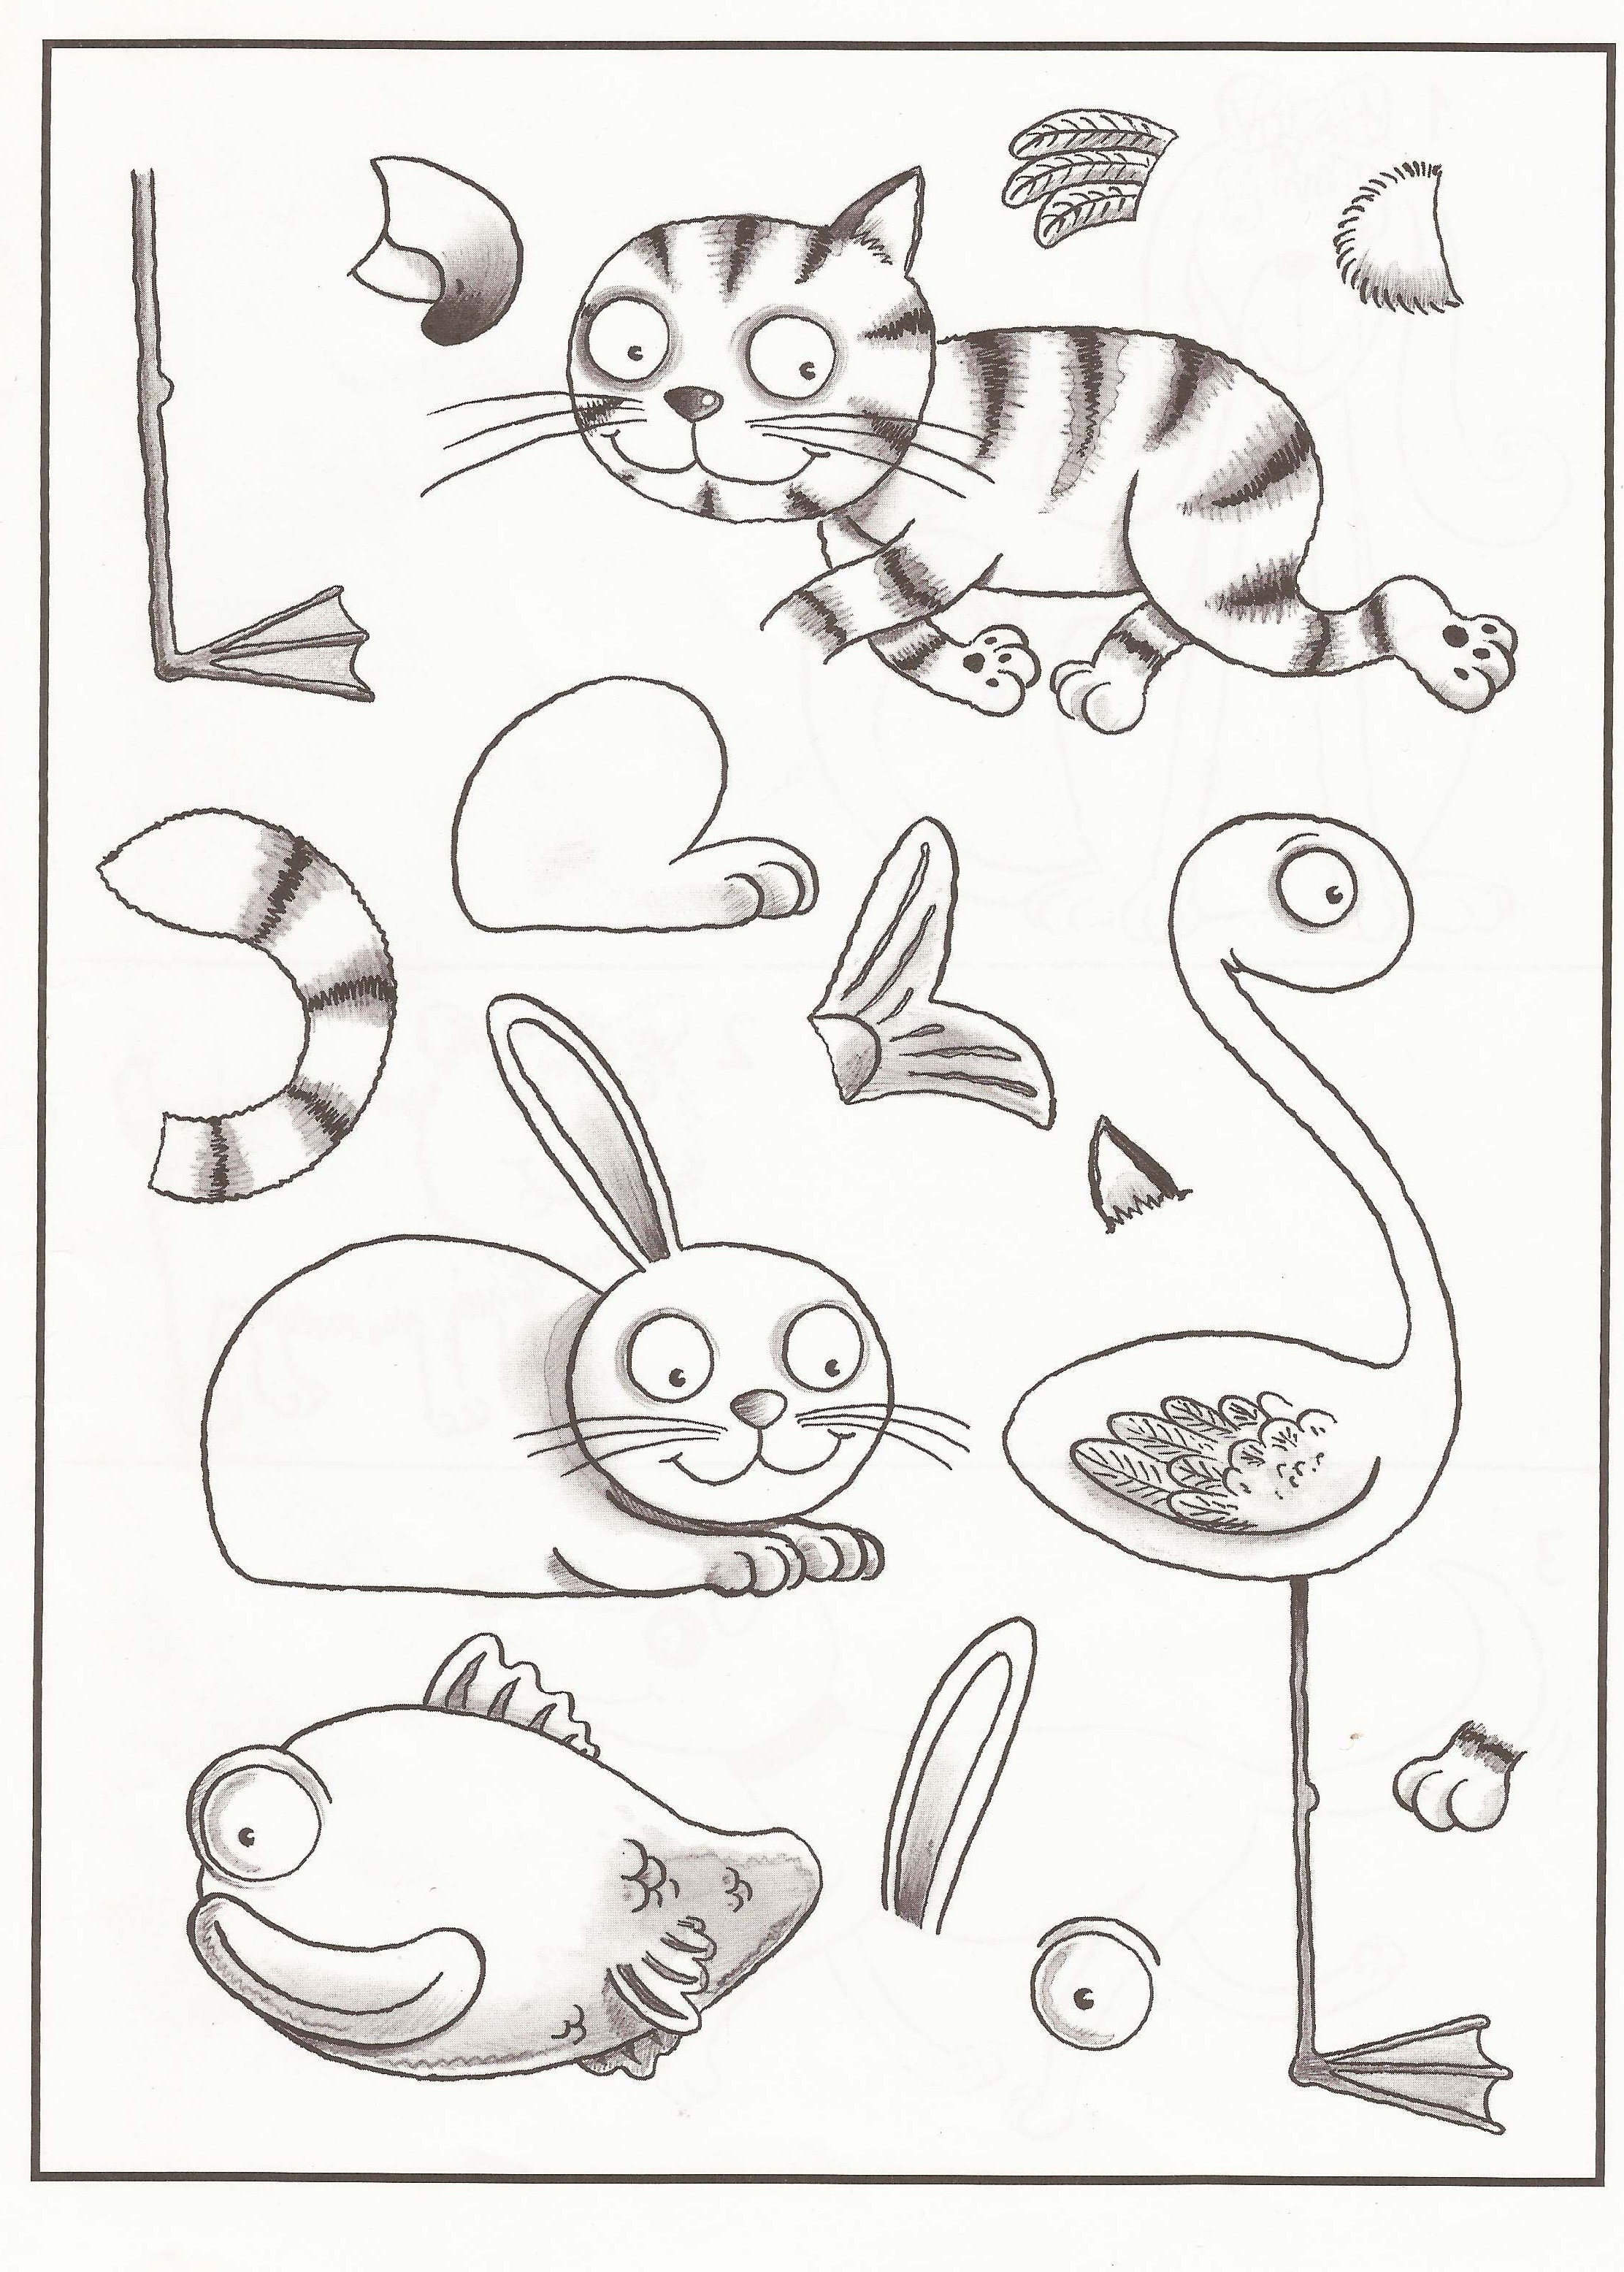 Animal Body Parts Worksheets Kindergarten 830437